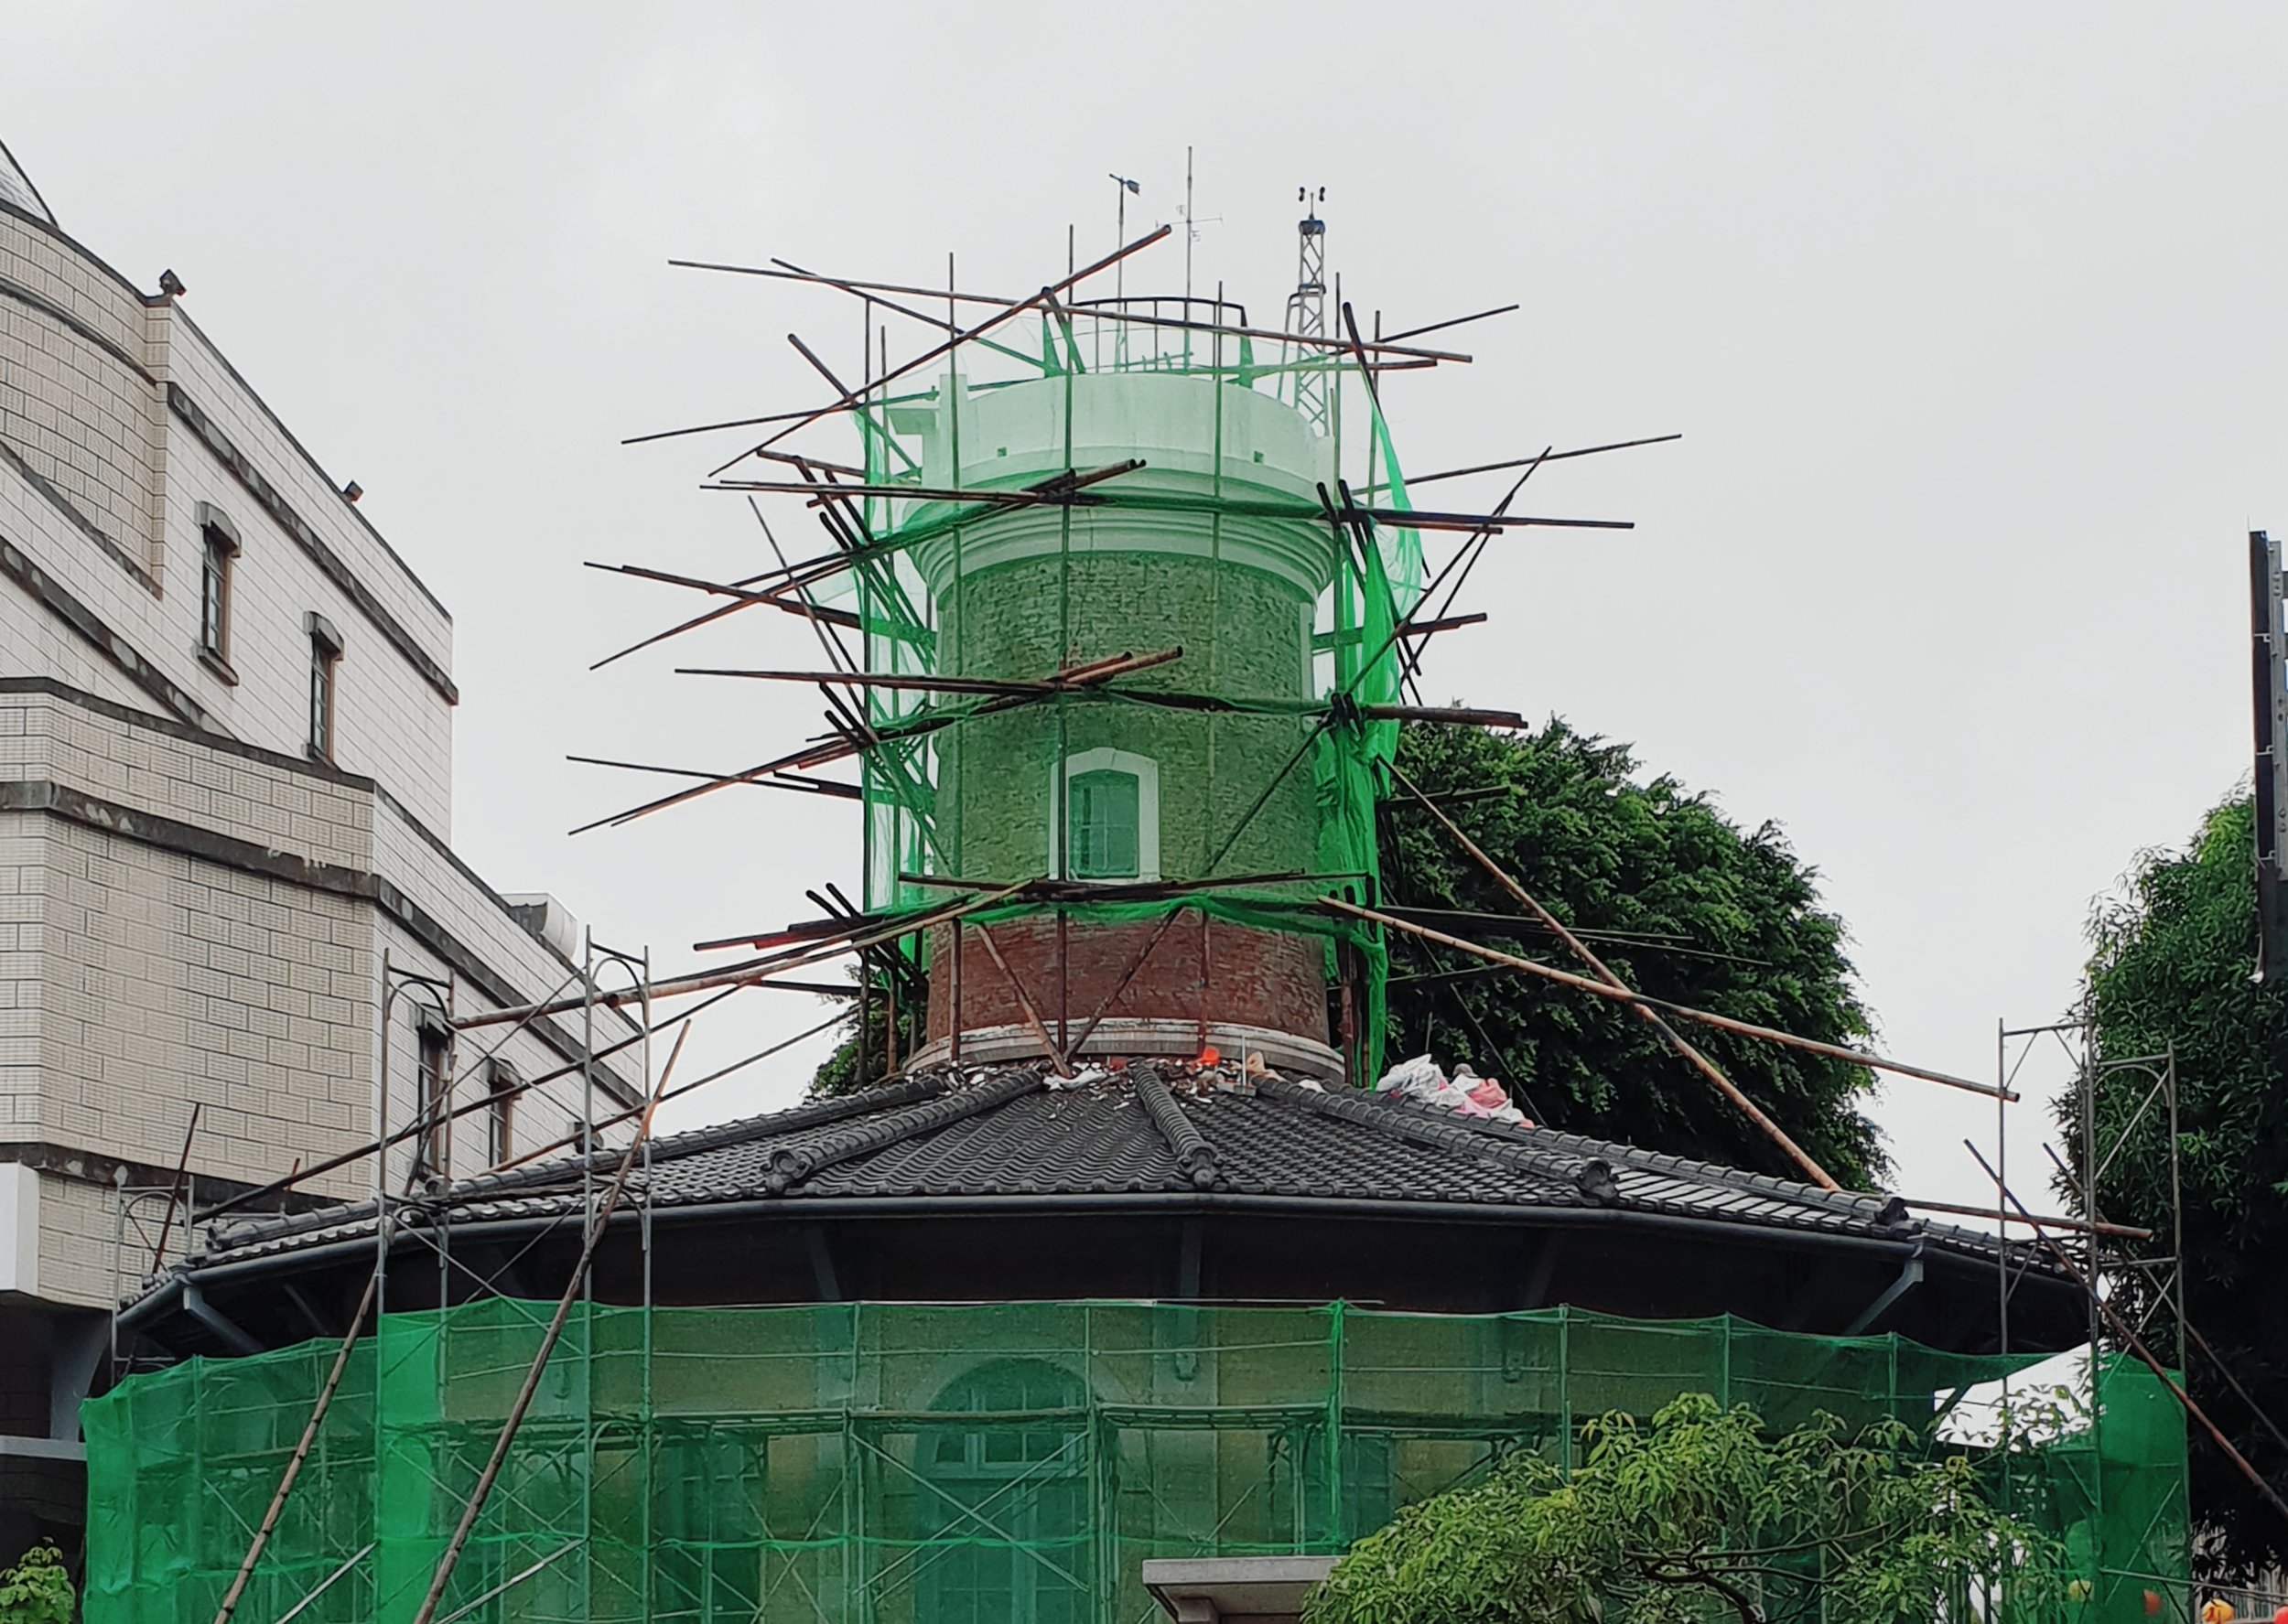 The weather observatory, one of the oldest government buildings in Taiwan, undergoing repairs